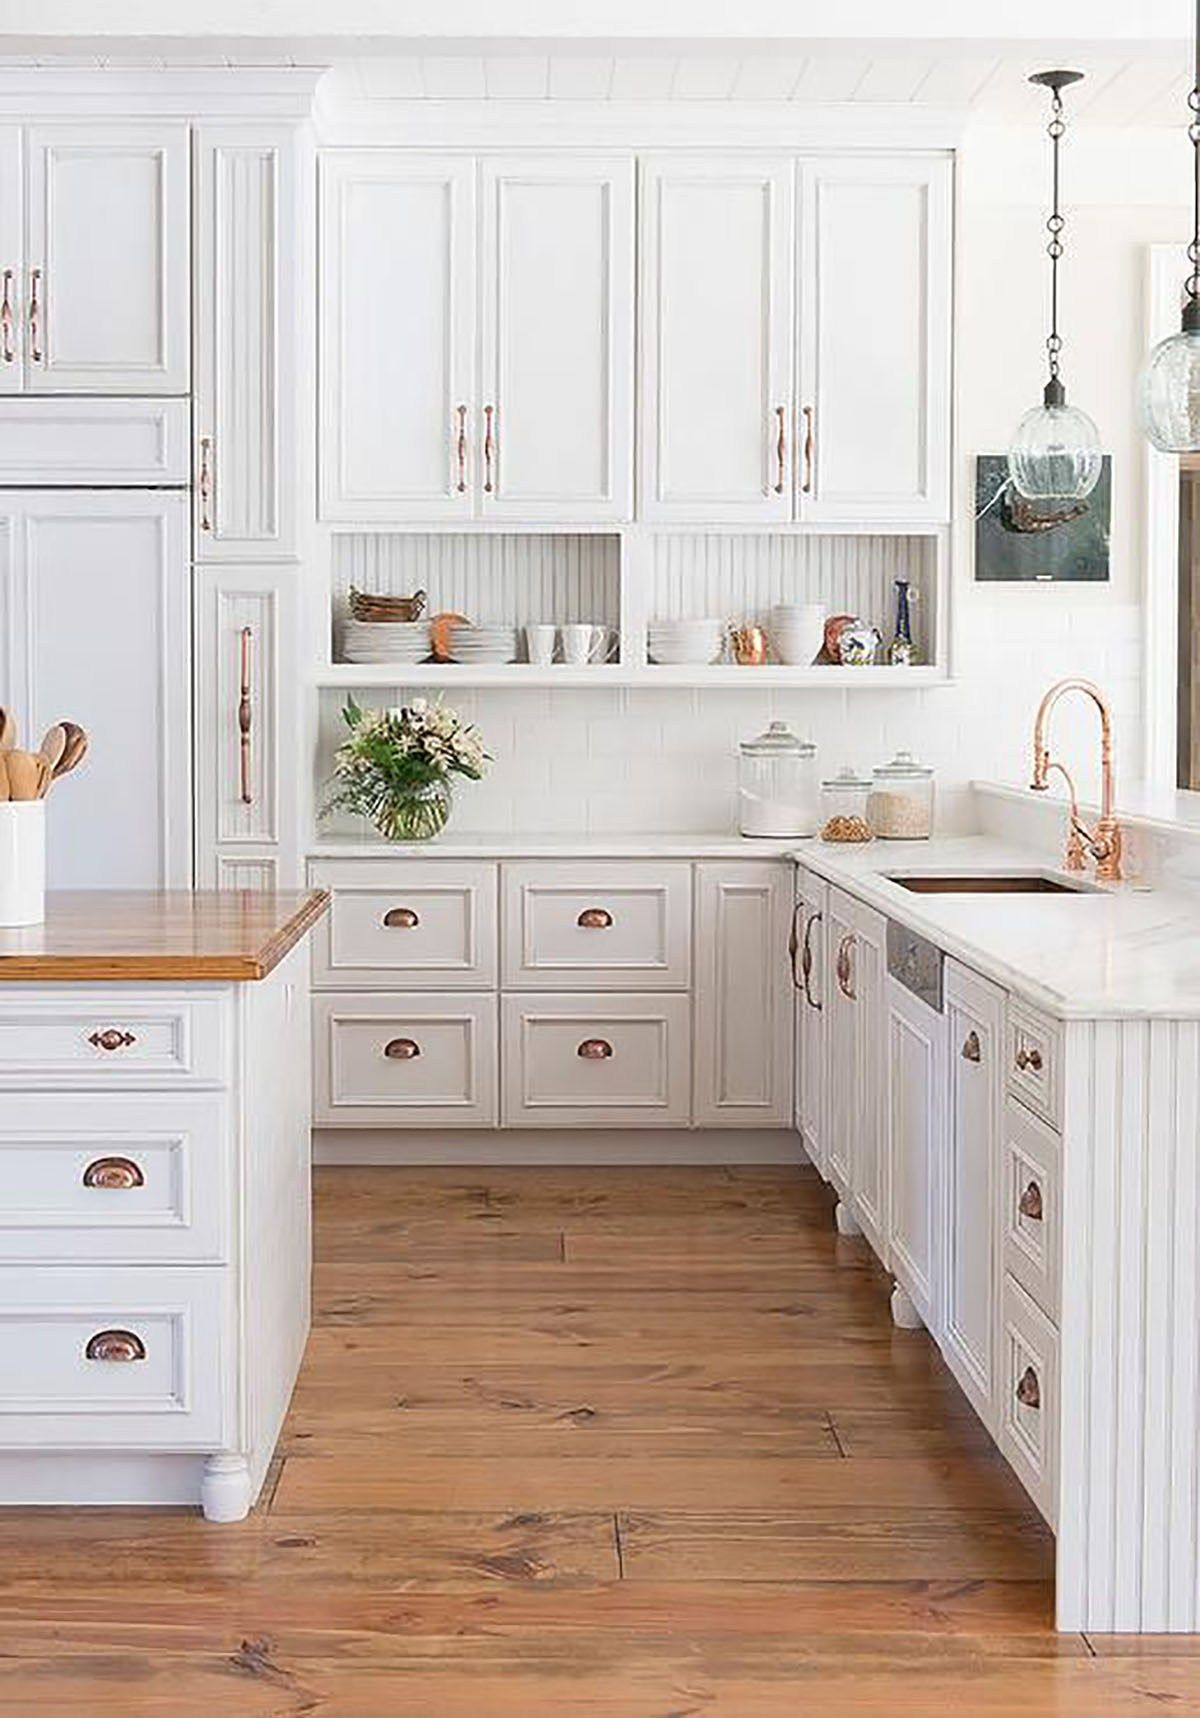 kitchens that inspire white and copper kitchen i love the open